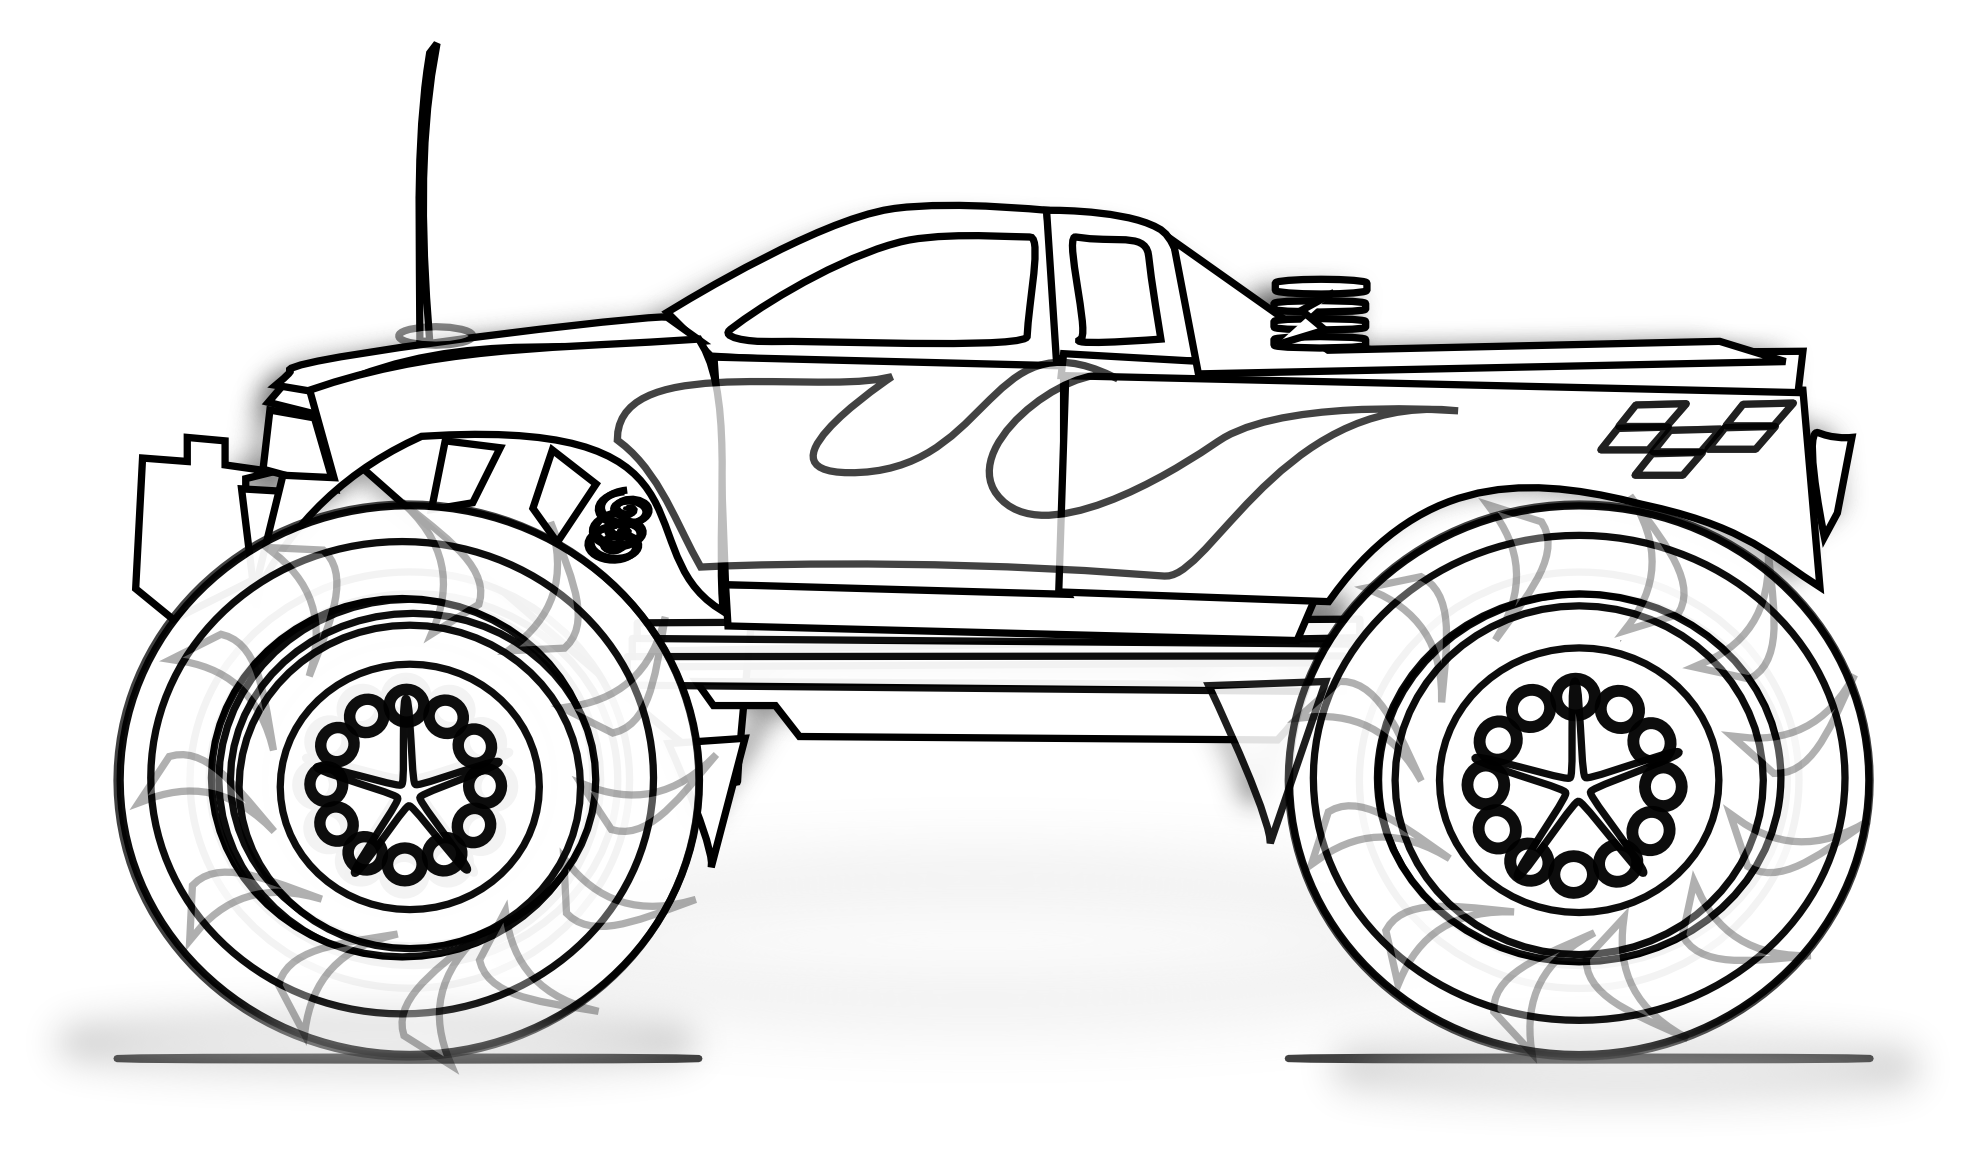 monster trucks coloring pages Free Printable Monster Truck Coloring Pages For Kids | Birthday  monster trucks coloring pages